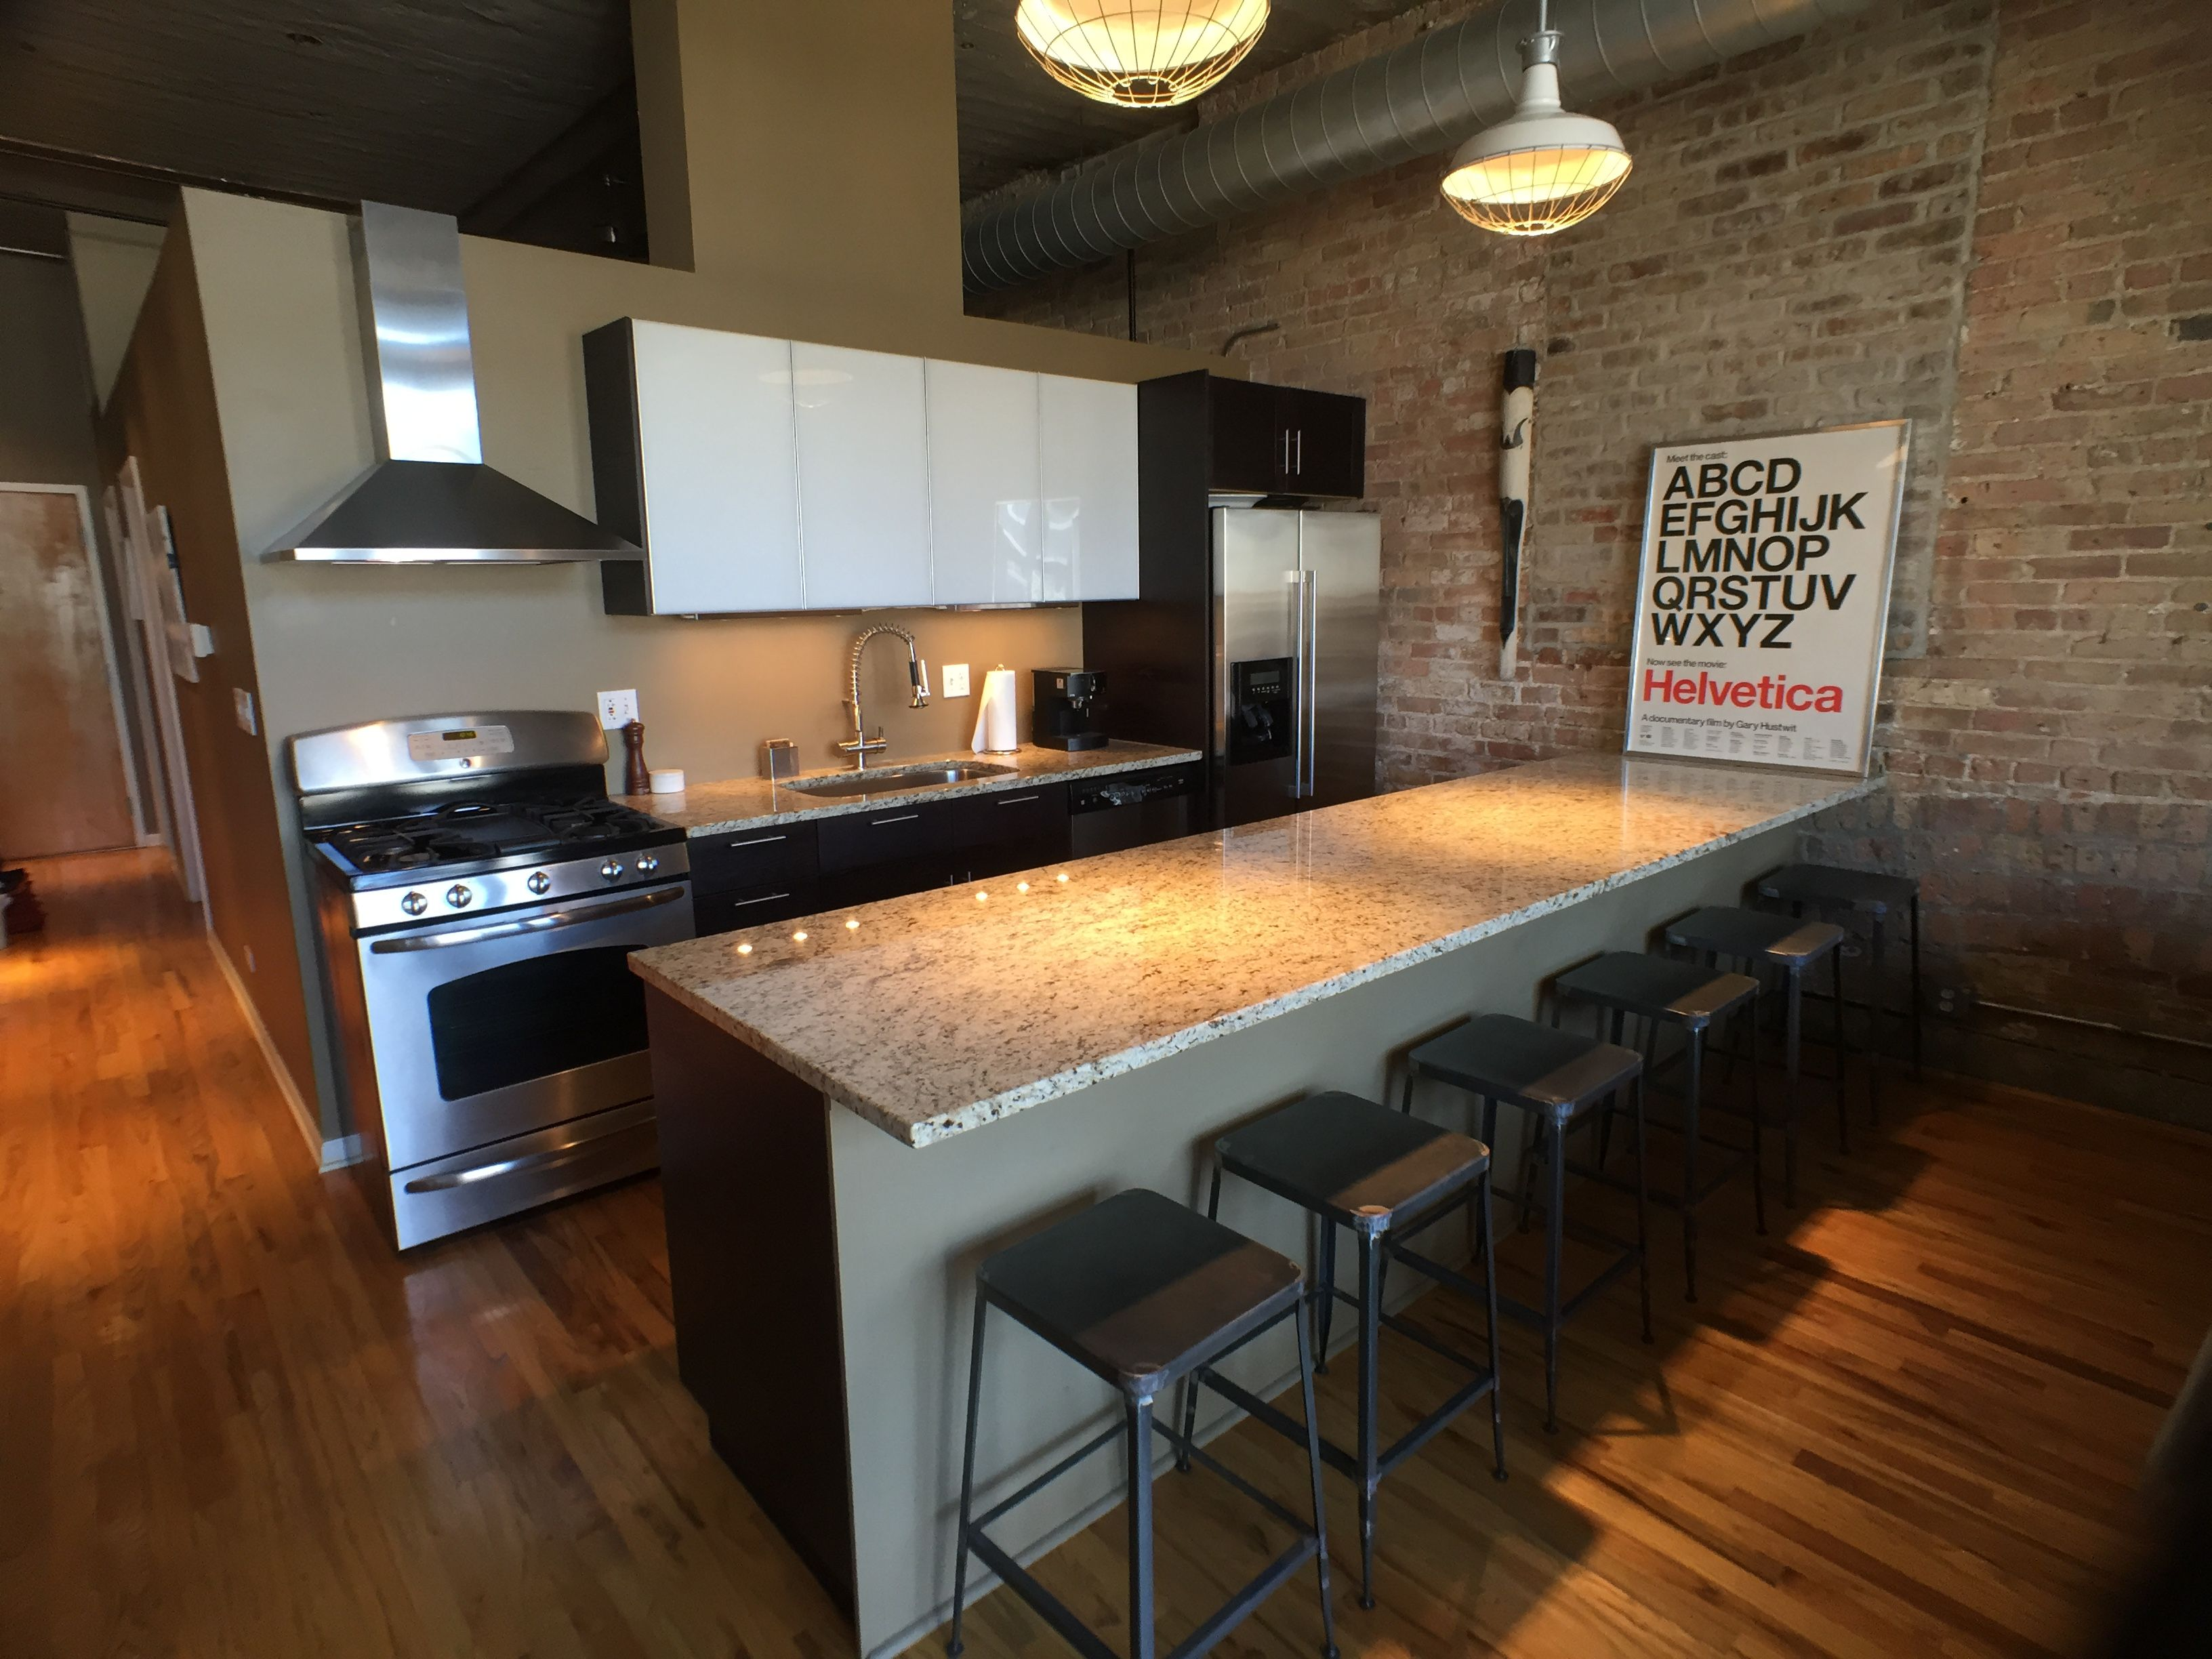 This 1 Bed In The West Loop Comes With All The Bells And Whistles Two Tone Cab Apartment Bedroom Decor Chicago Apartments For Rent Apartment Decorating Rental